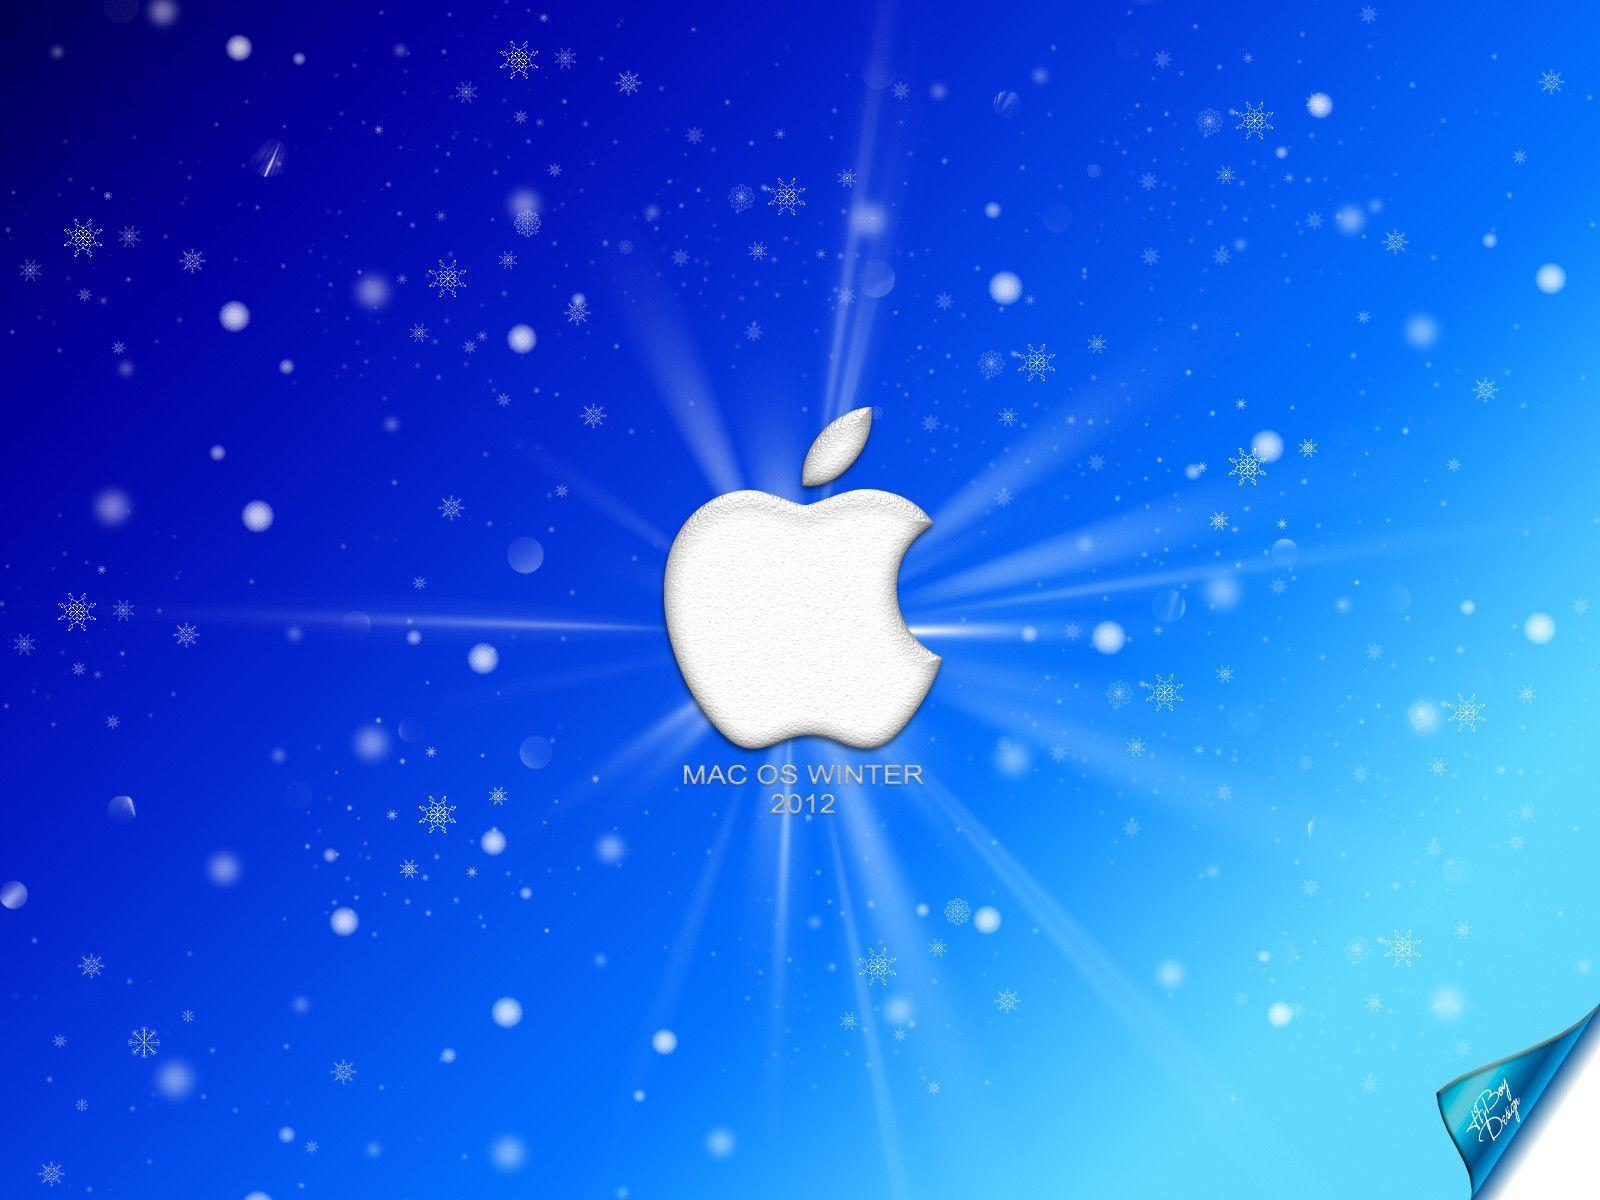 Mac Winter Wallpapers 1600x1200